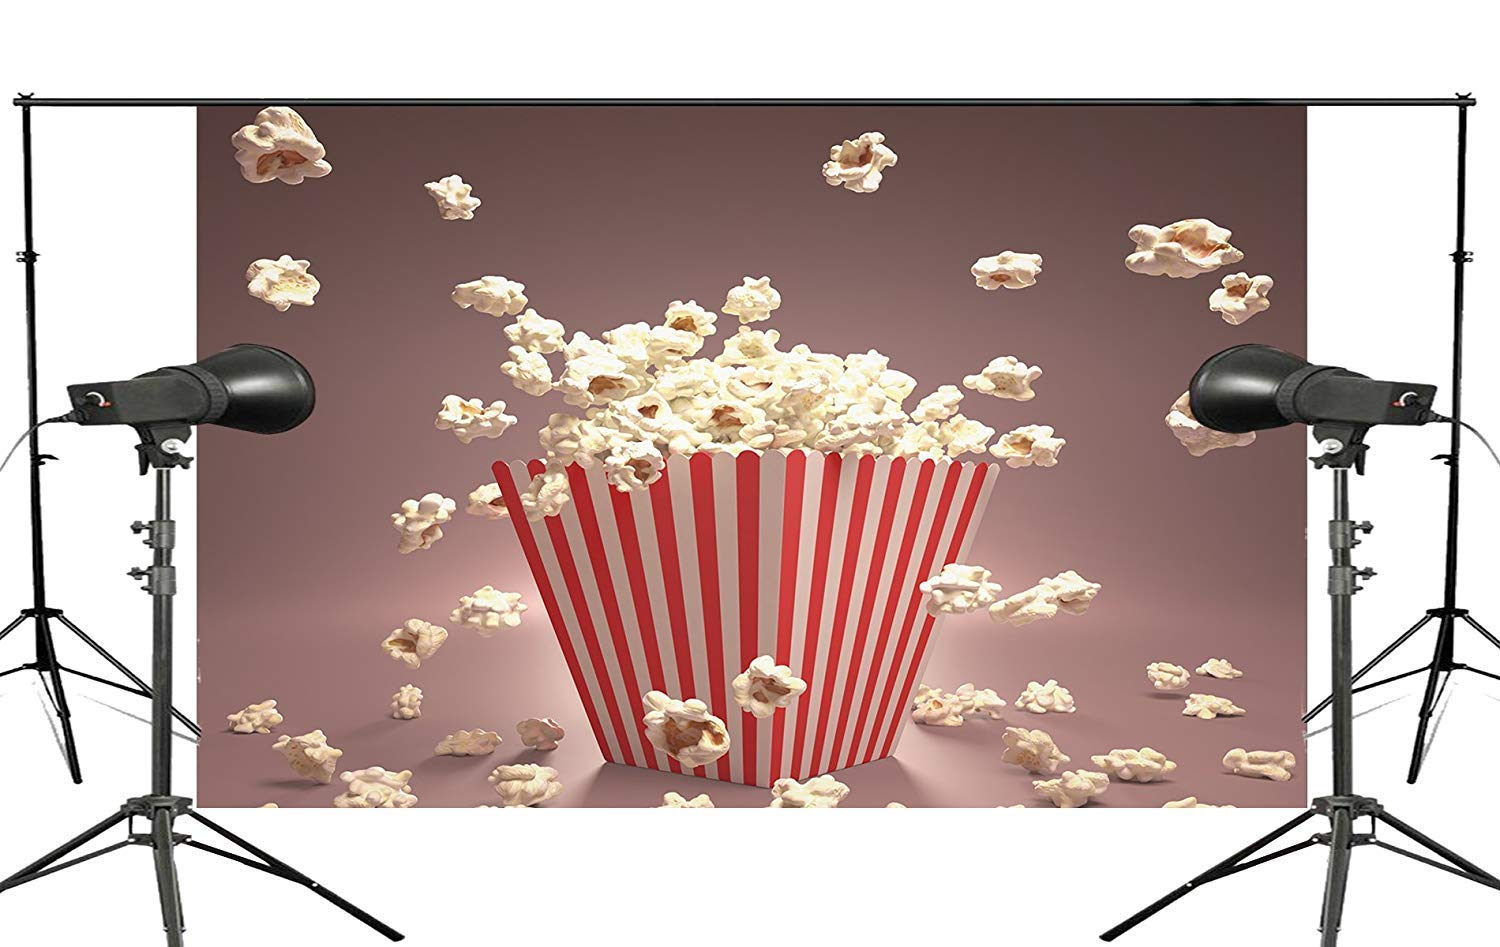 ERTIANANG Exquisite Background Popcorn from The Box Pop Out Sprinkled on The Ground Kids Studio Photography Background 150x210cm